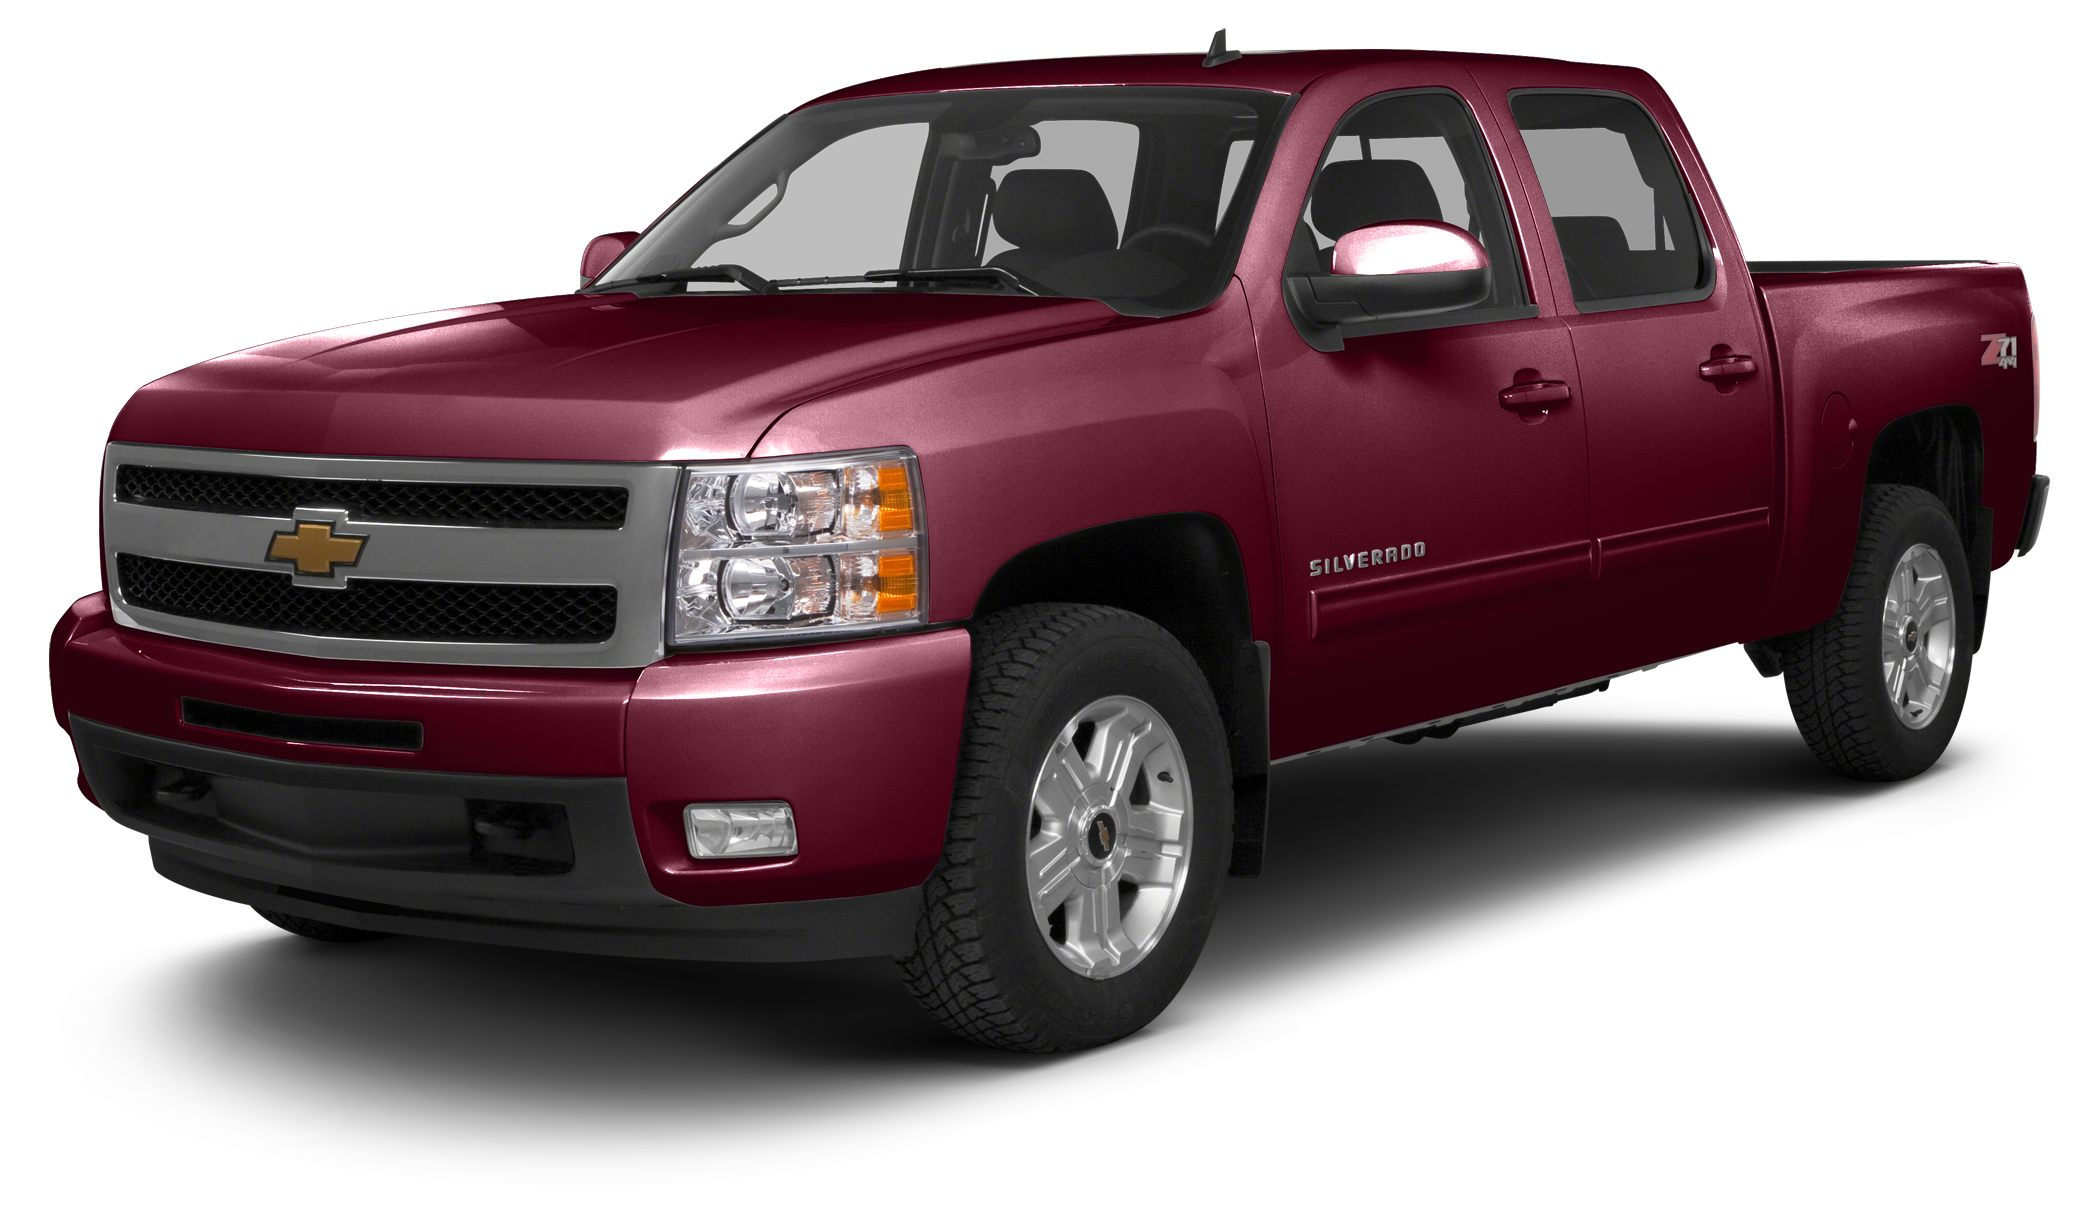 2013 Chevrolet Silverado 1500 LT CREW CAB 4X4 WITH LIFT KIT AND UPGRADED WHEELS AND TIRES LEATH